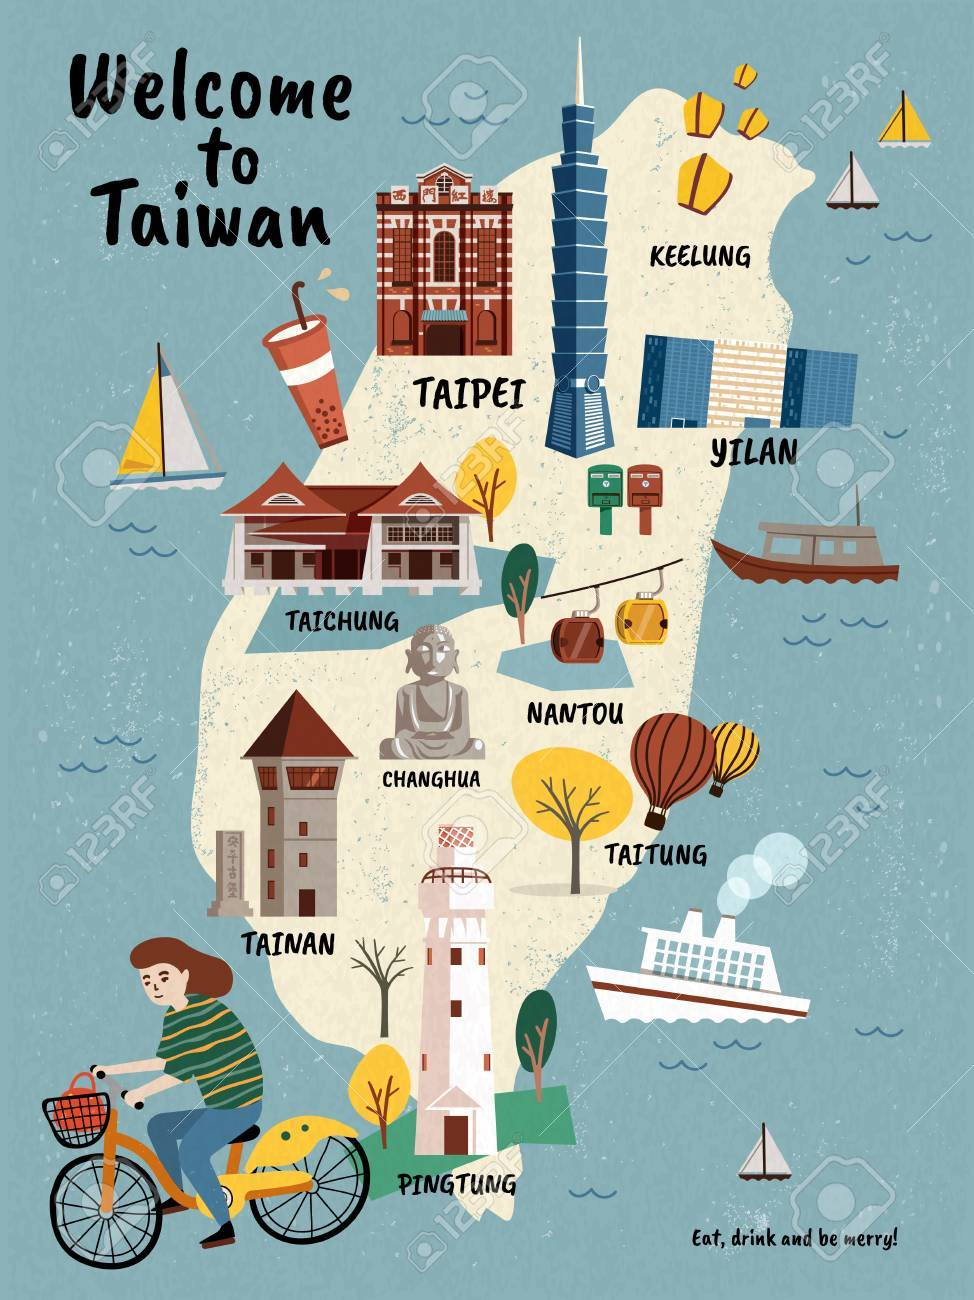 Taiwan Travel map, hand drawn style attractions and specialties with girl riding a bike - 86920298